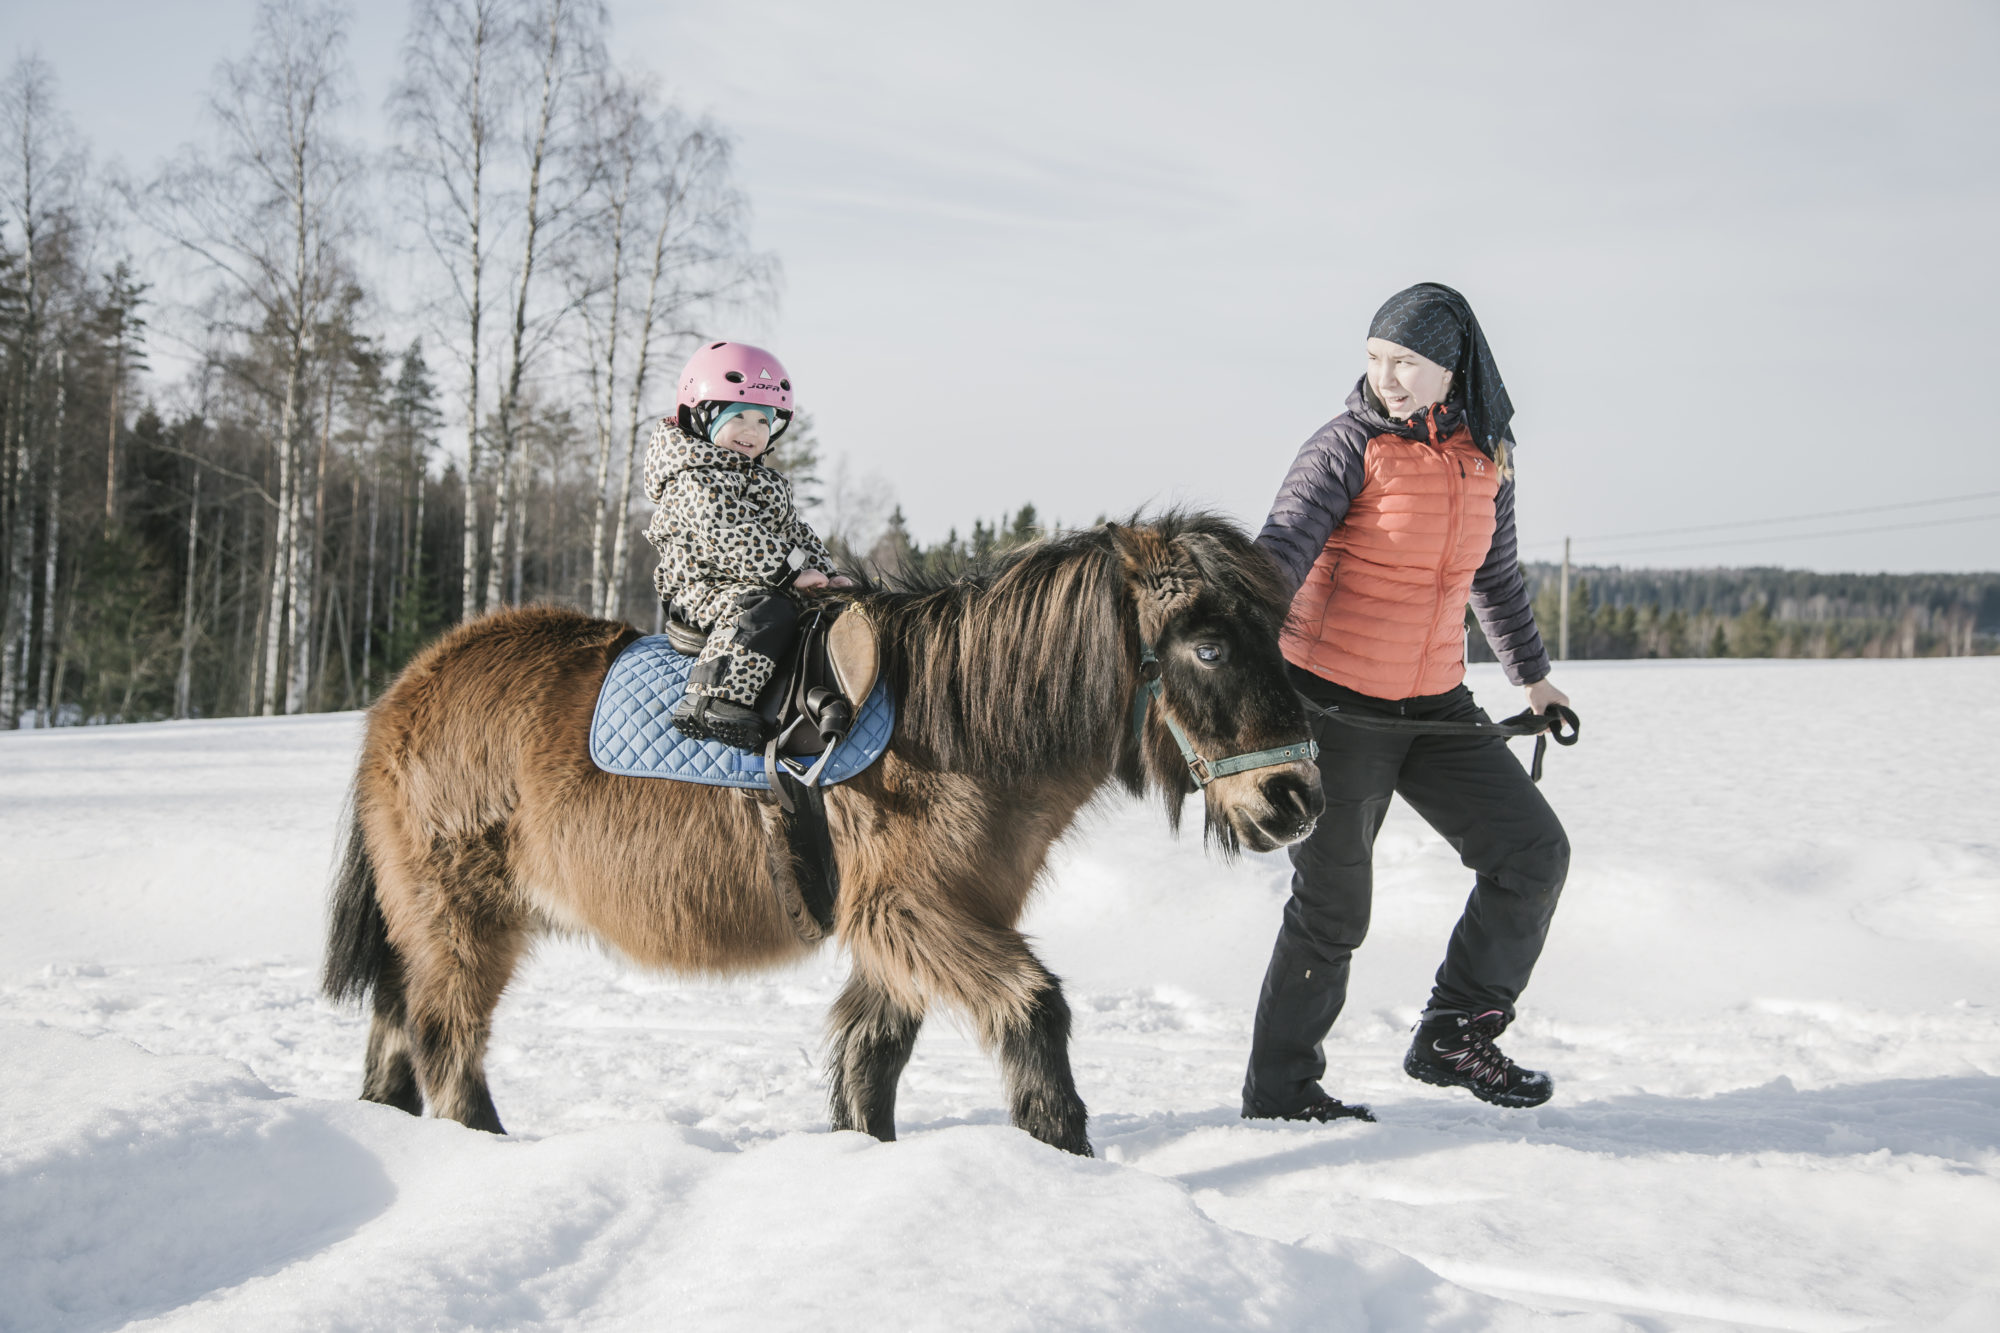 Pony riding in the winter